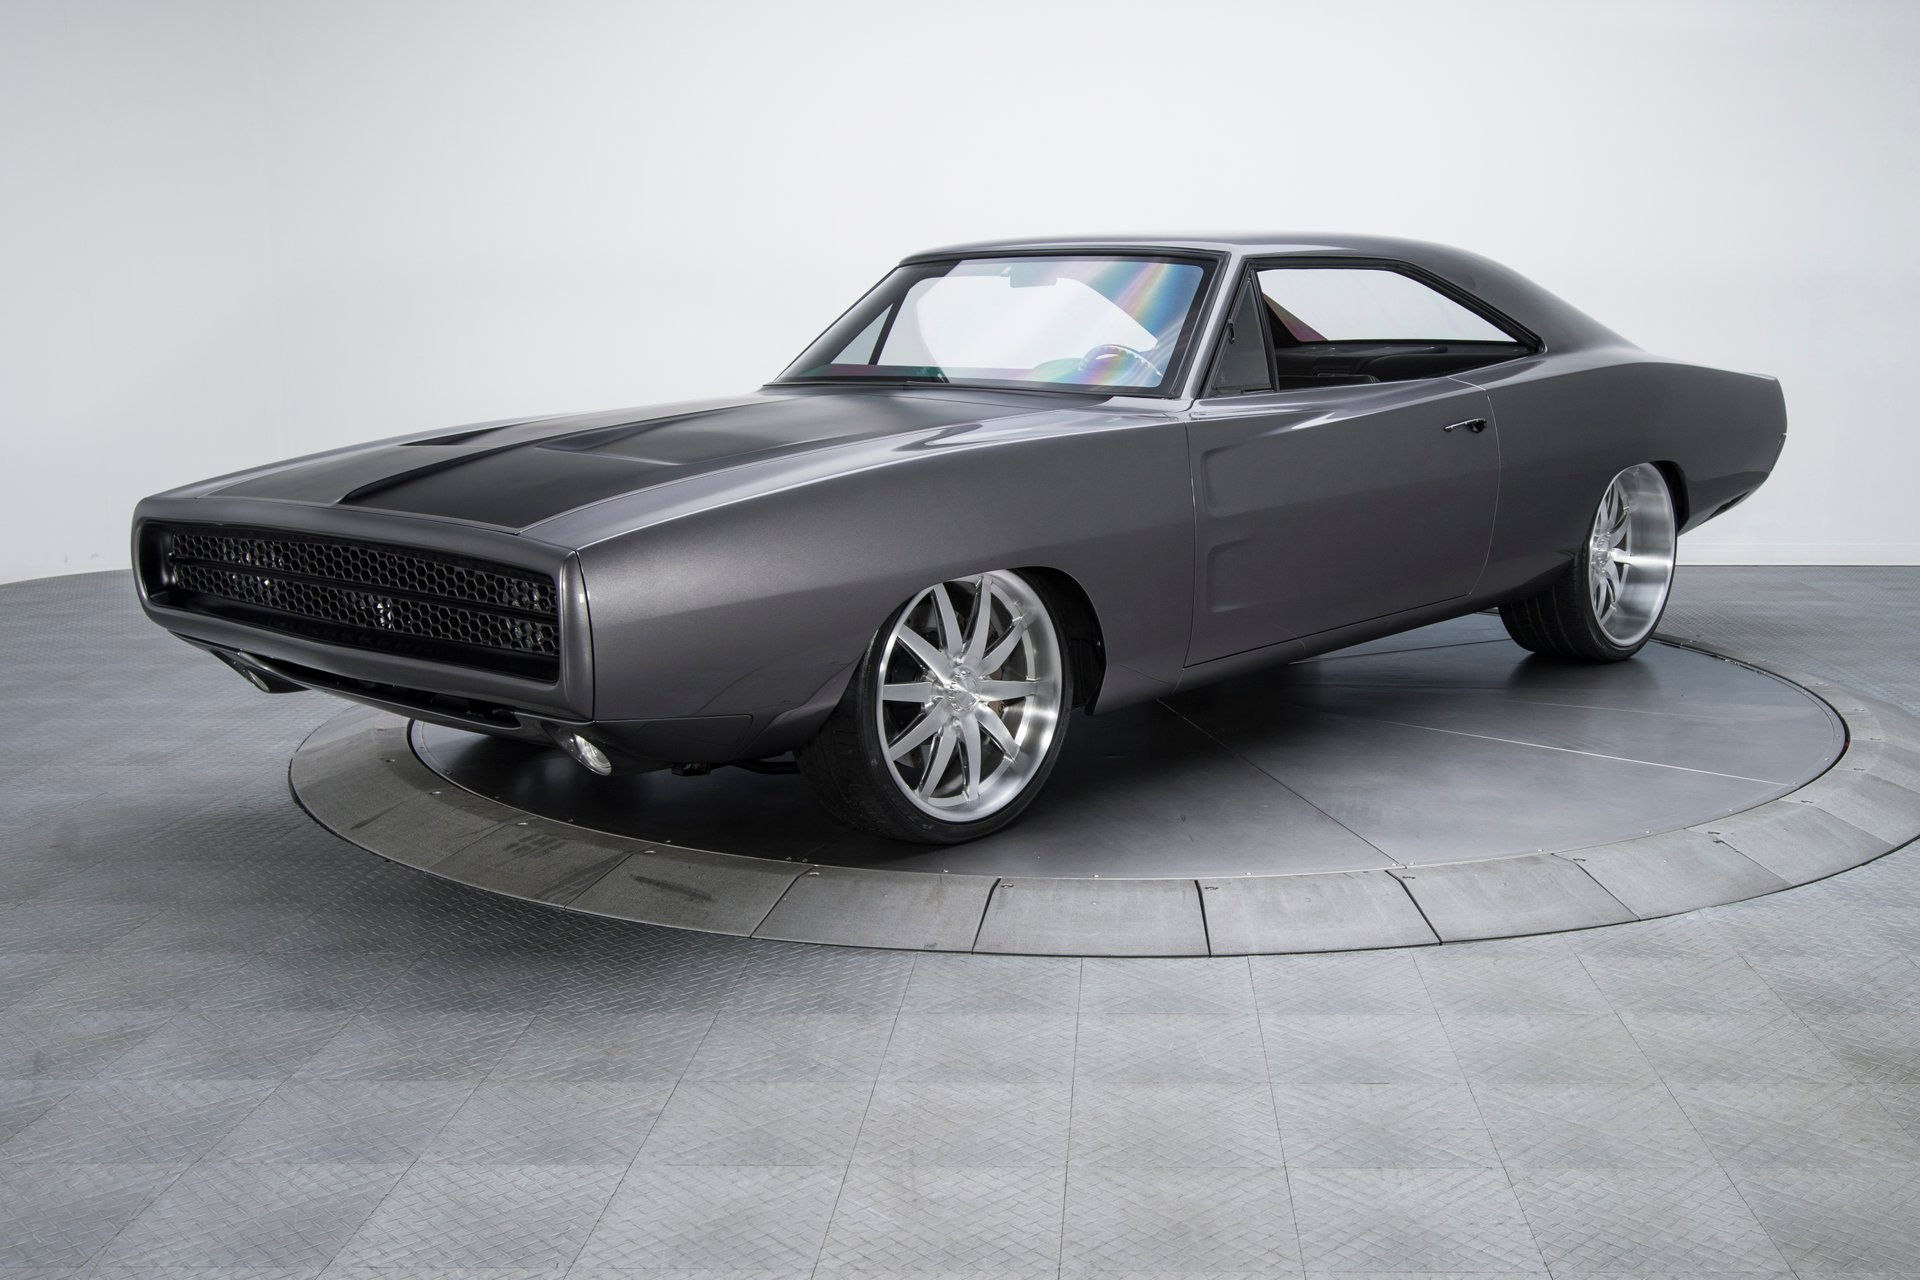 135980 1970 Dodge Charger Rk Motors Classic Cars And Muscle Cars For Sale